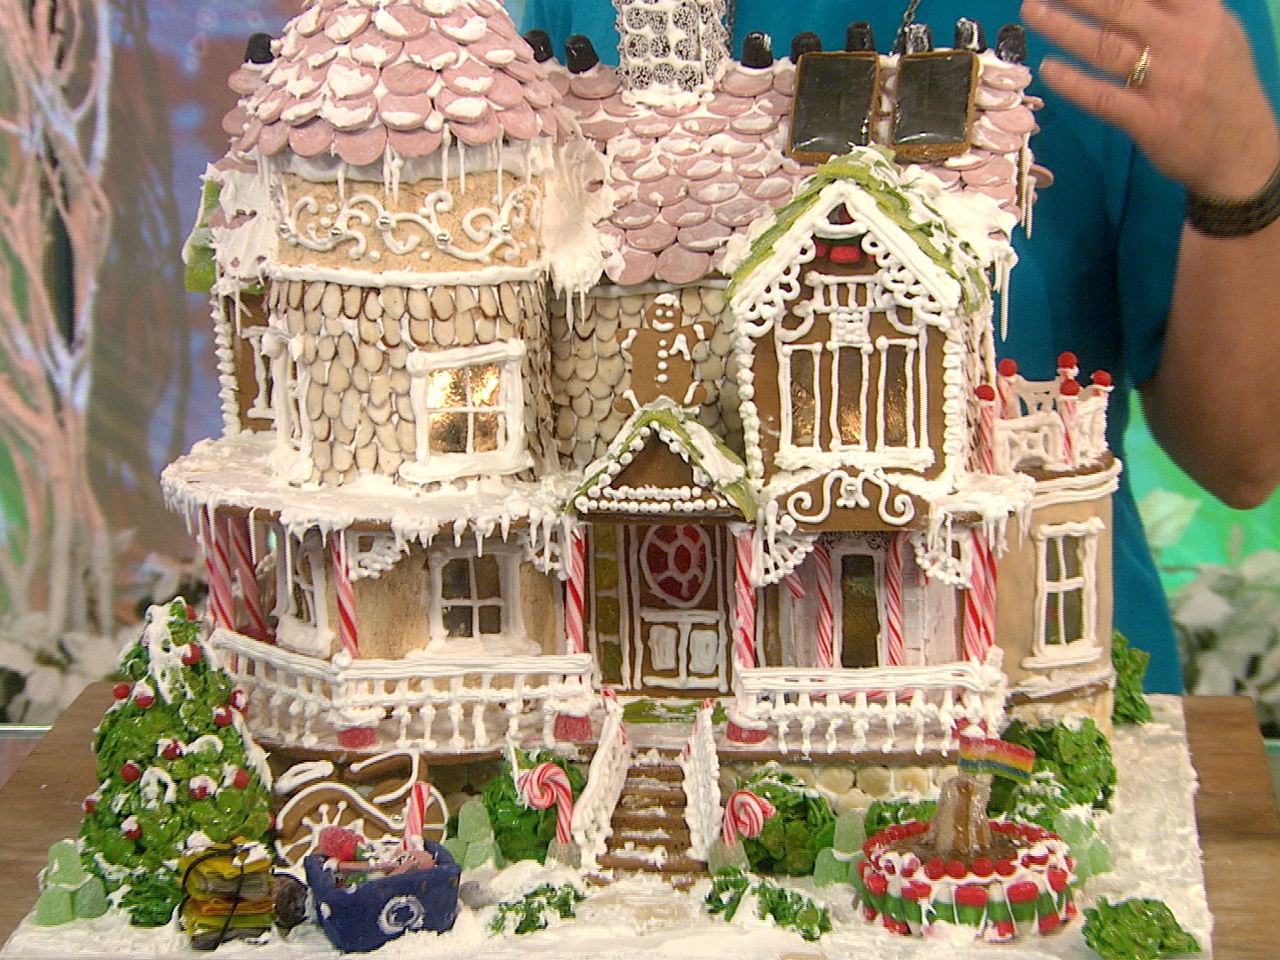 Viewers Compete For Best Gingerbread House Title